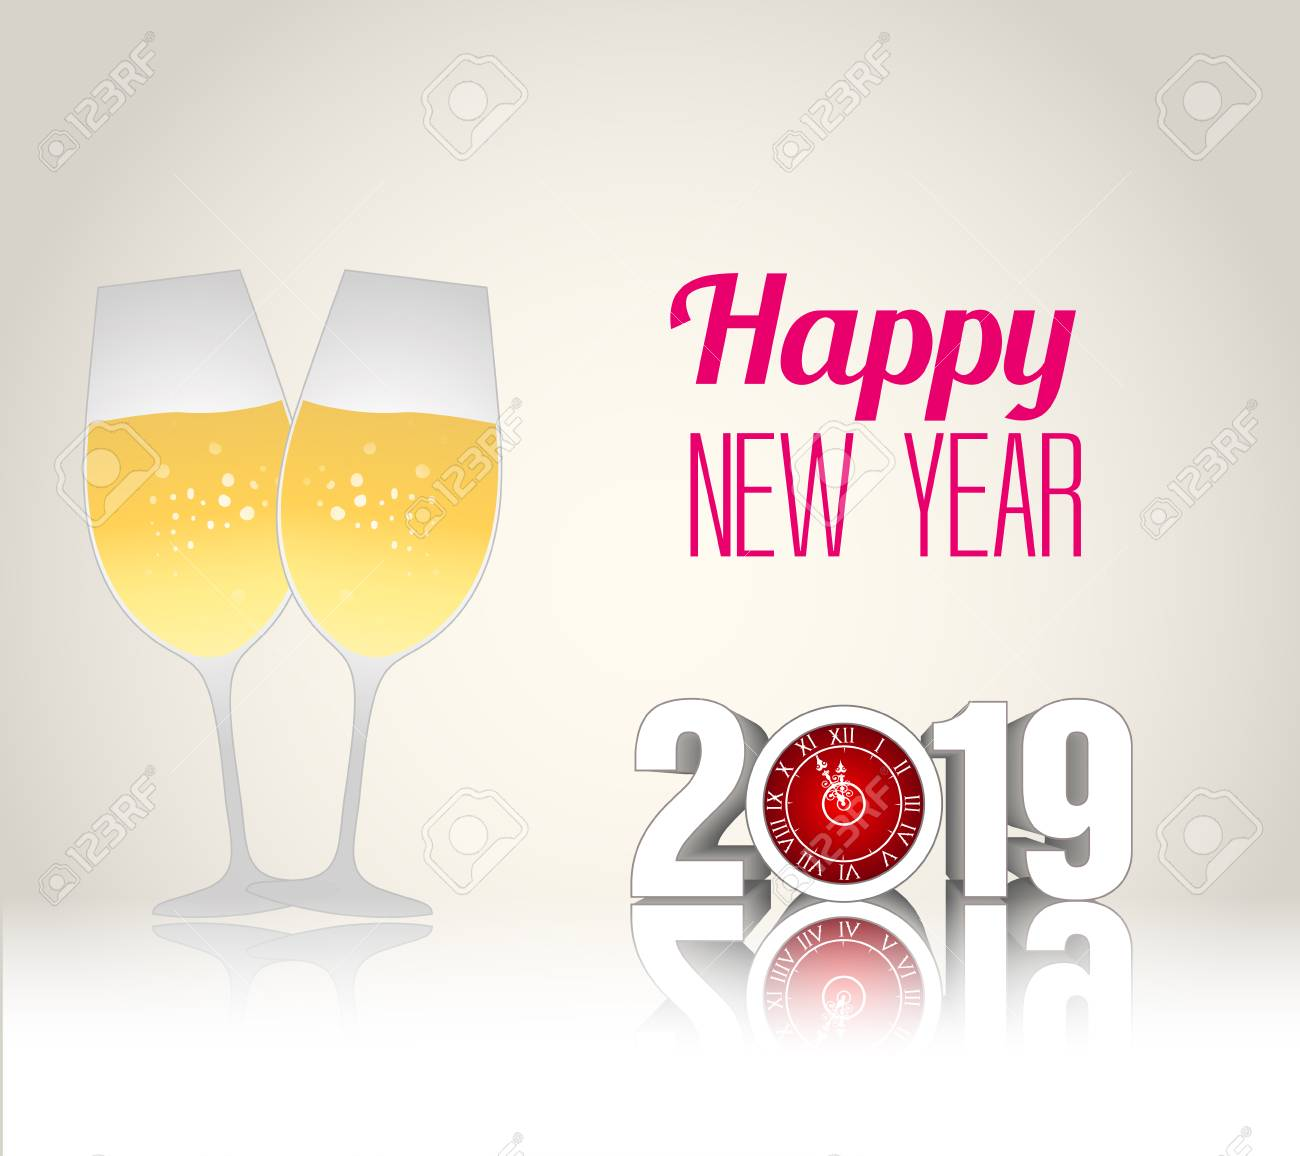 happy new year 2019 template vector illustration with champagne glasses stock vector 98015169